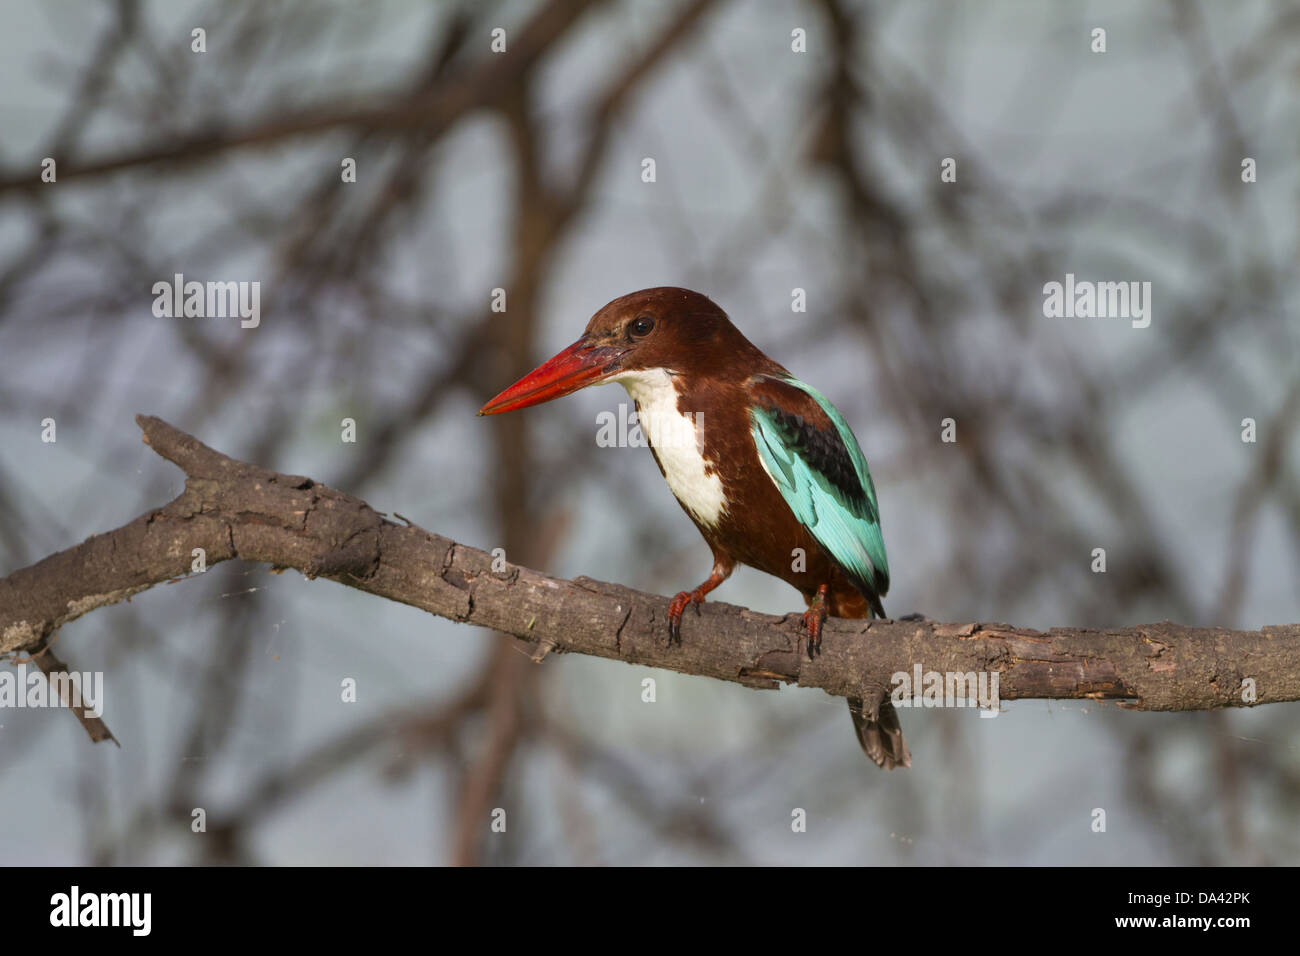 White-throated Kingfisher (Halcyon smyrnensis) adult perched on branch Keoladeo Ghana N.P. (Bharatpur) Rajasthan - Stock Image